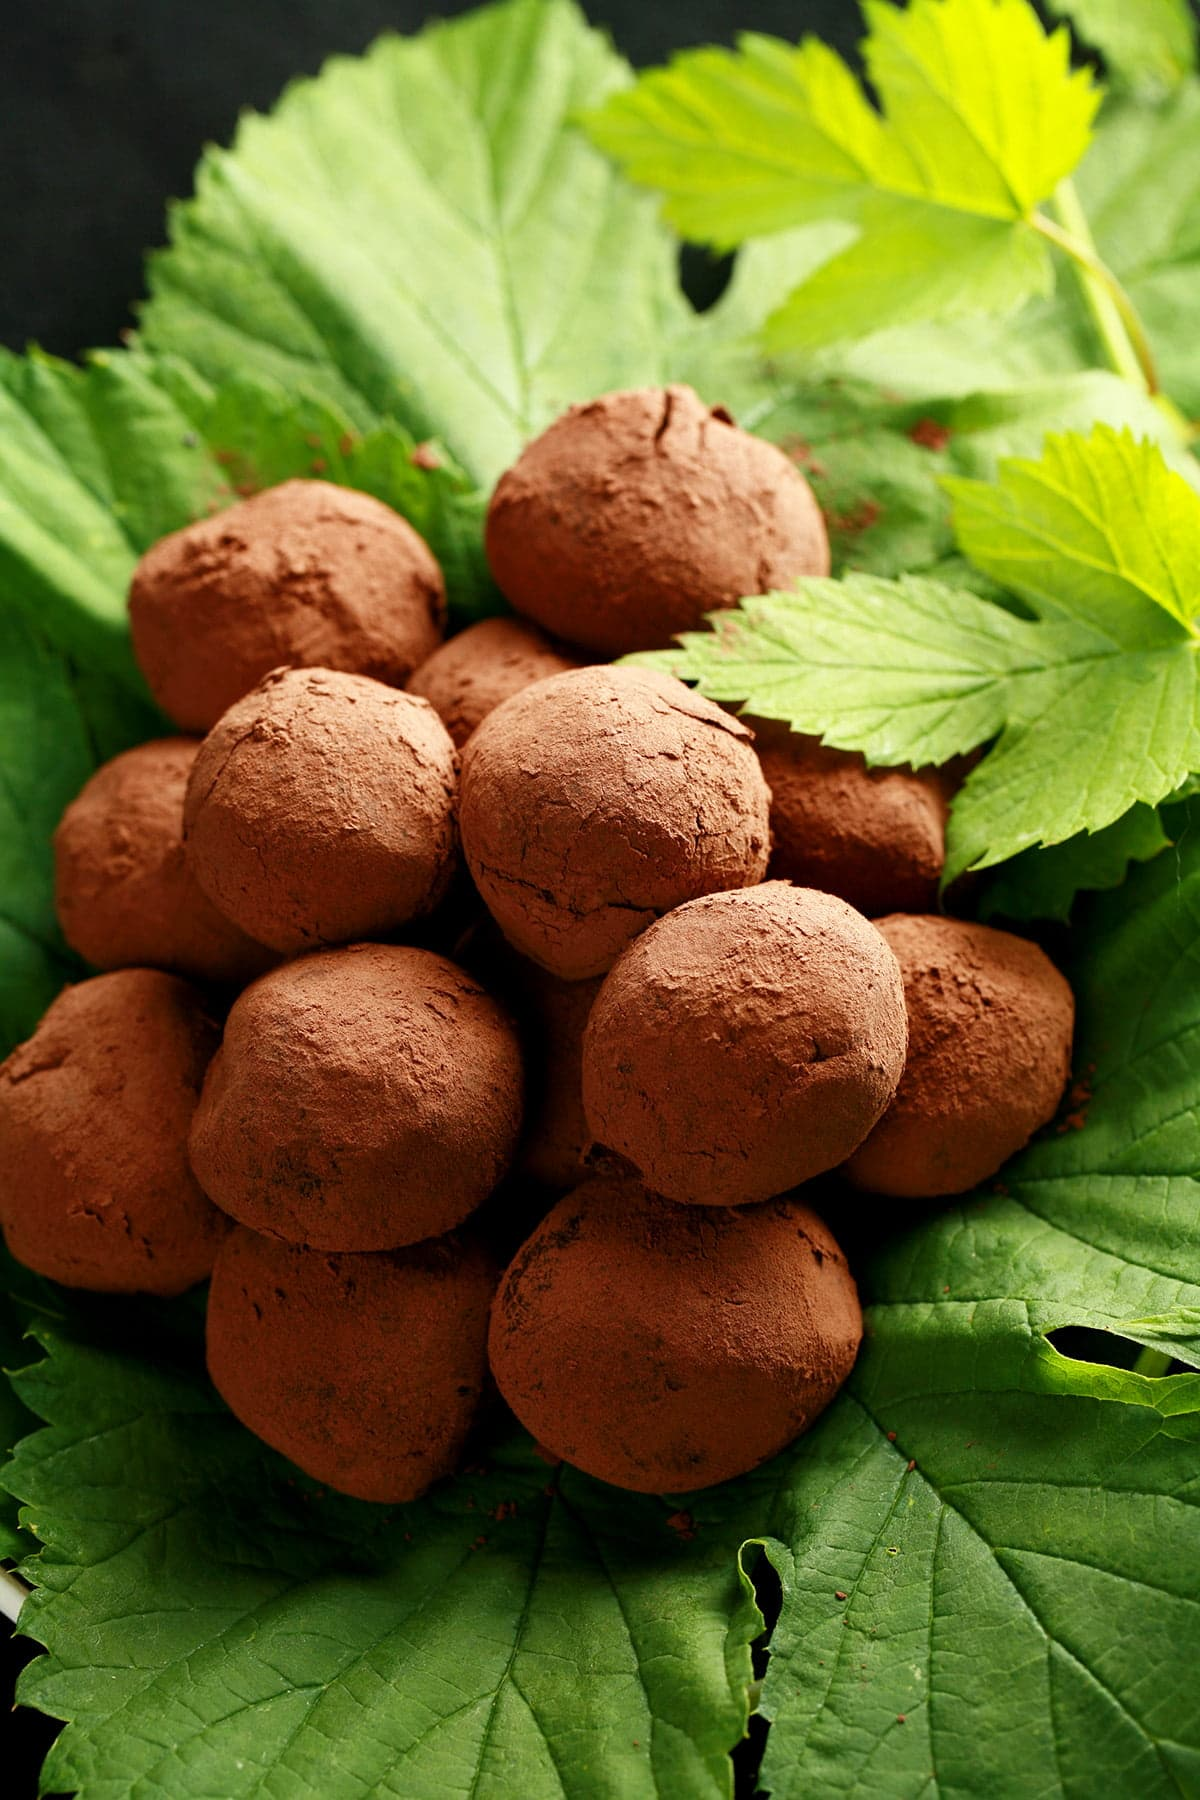 A mound of dark chocolate truffles rests on a pile of hop leaves and hop bines.